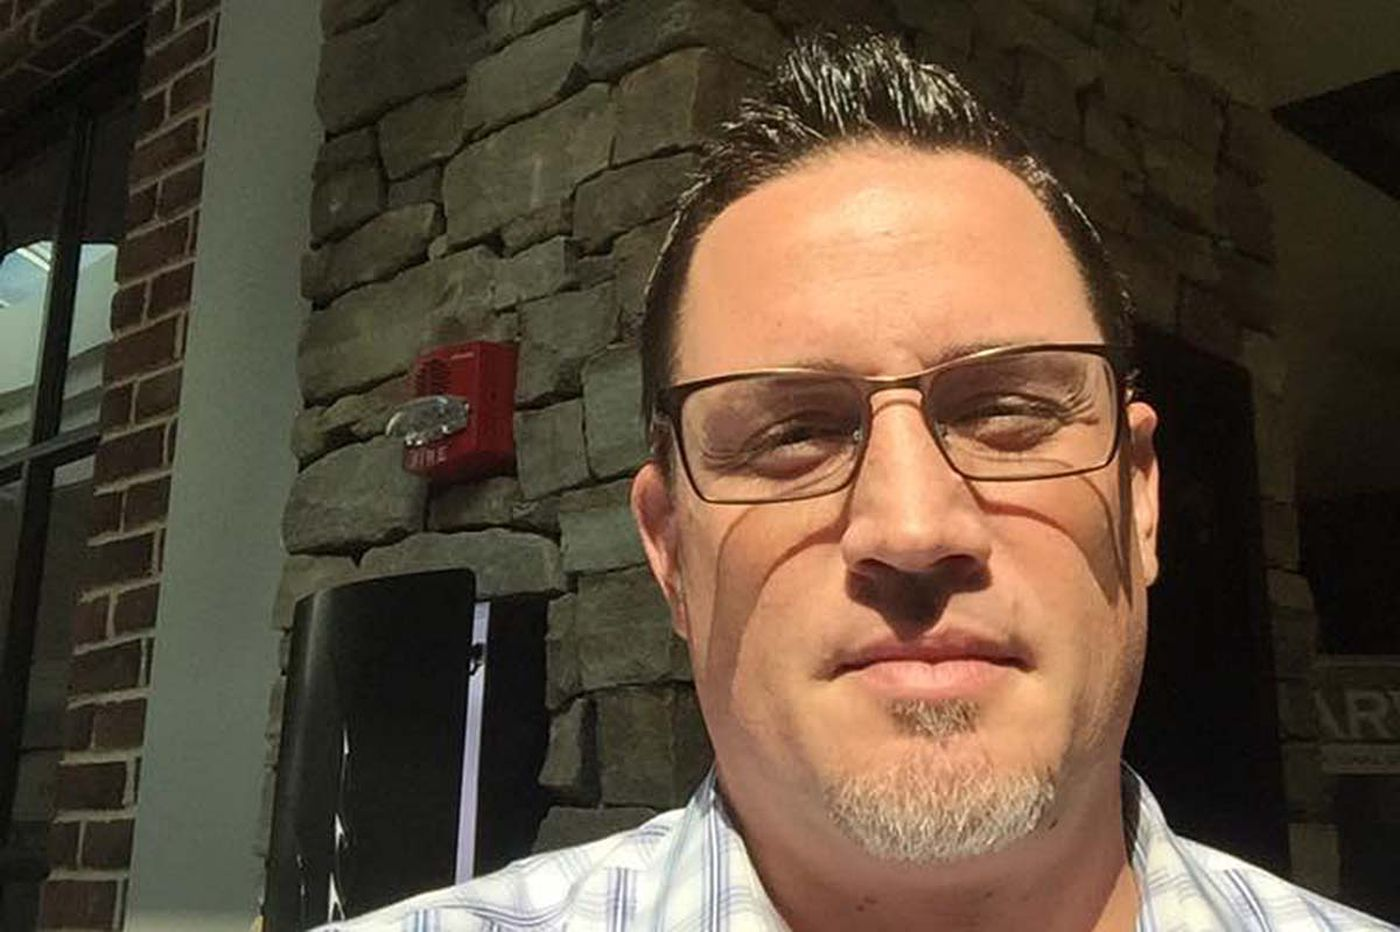 'I was right next to it:' Philly restaurateur lands in midst of Fort Lauderdale airport shooting